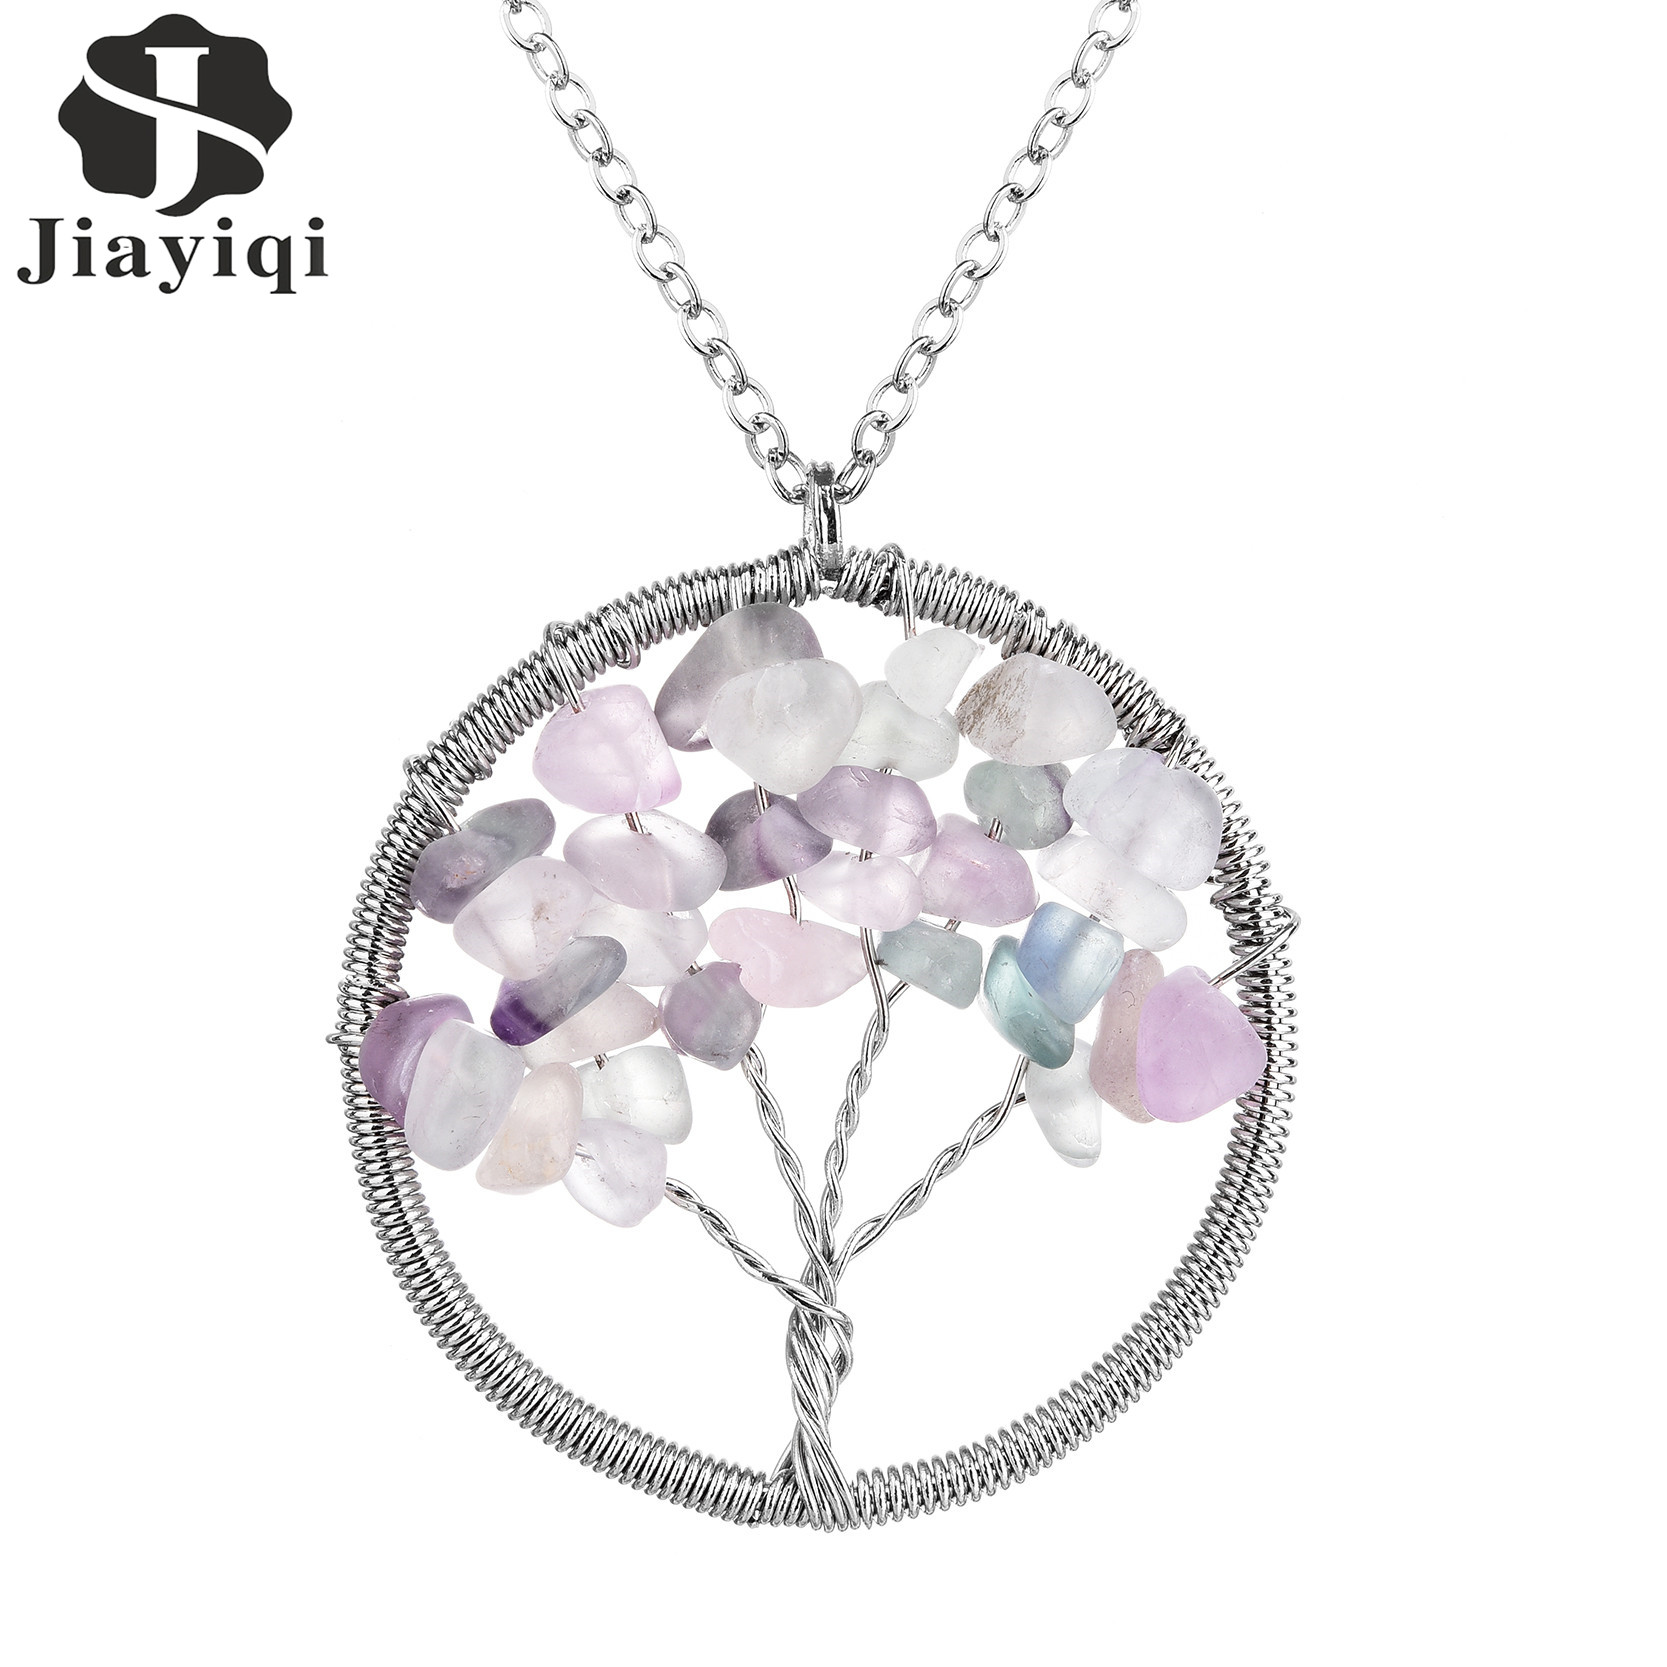 2016 New Arrival Fine Jewelry Tree Of Life Pendant Natural Stone Necklace Alloy Chain Necklace for Women Fashion Accessories(China (Mainland))